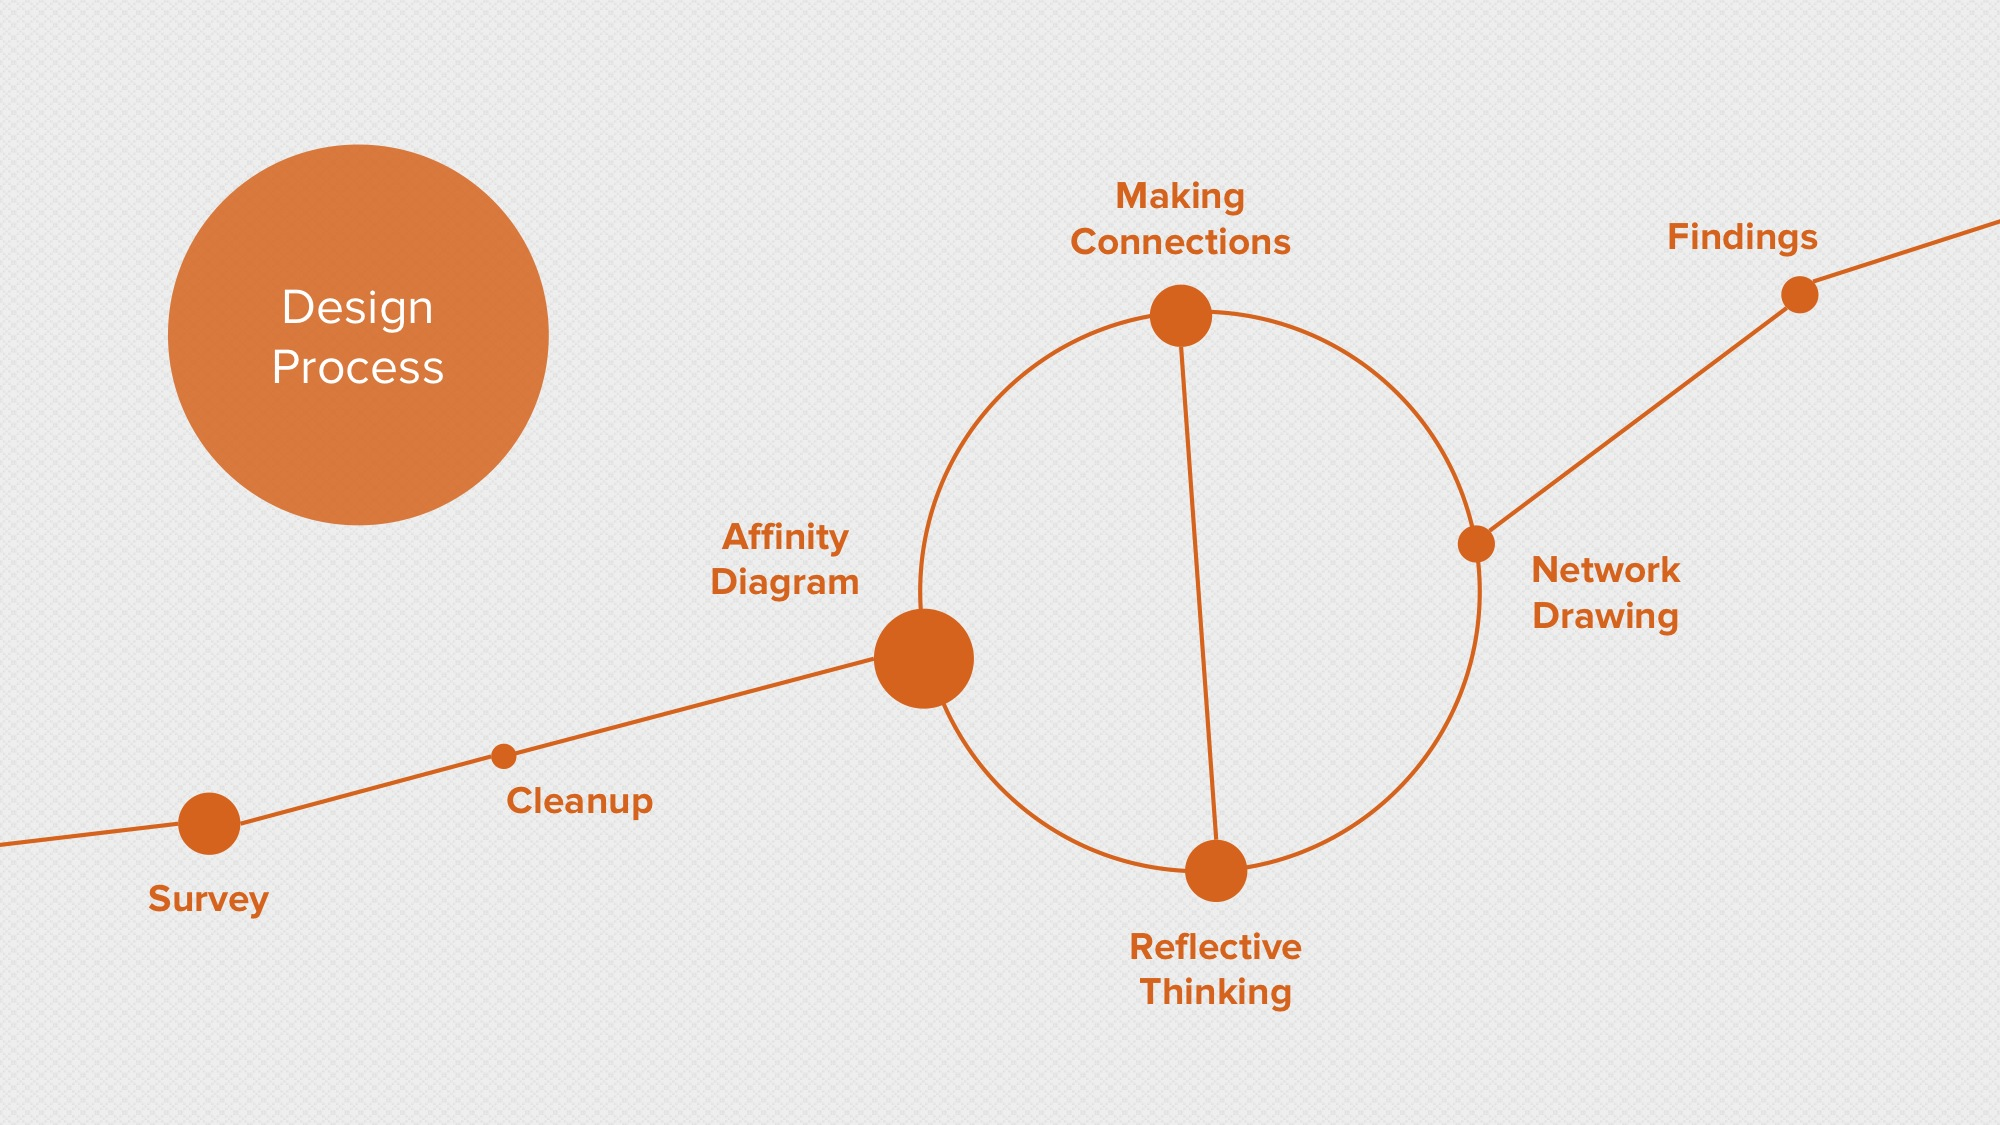 2014.10.17 - -How Are Ideas Connected- Drawing the Design Process of Idea Networks in Global Game Jam- - Meaningful Play 2014 6.jpeg